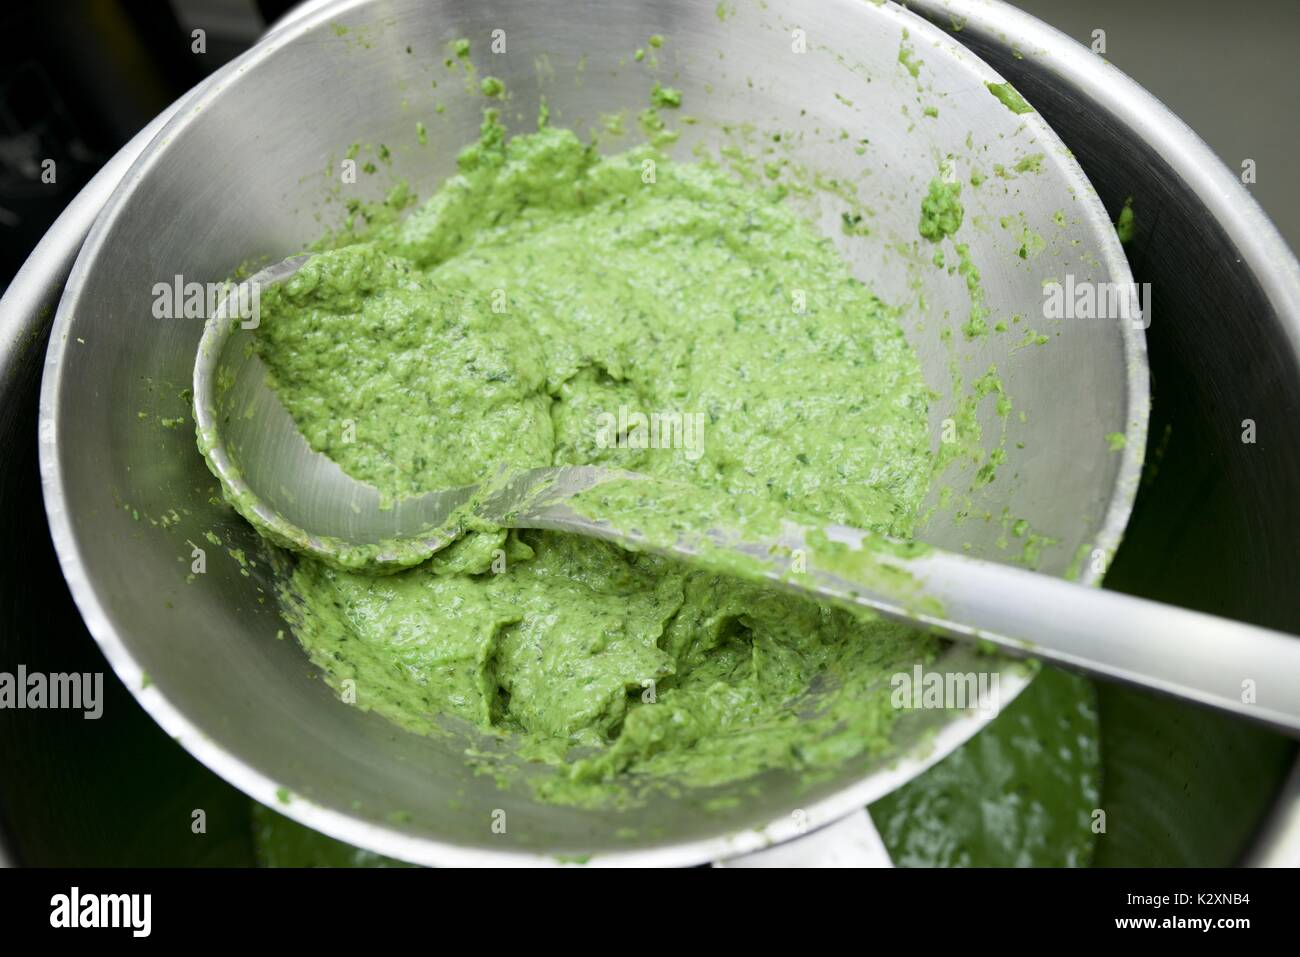 Preparation of vegetables pureed in a restaurant. - Stock Image